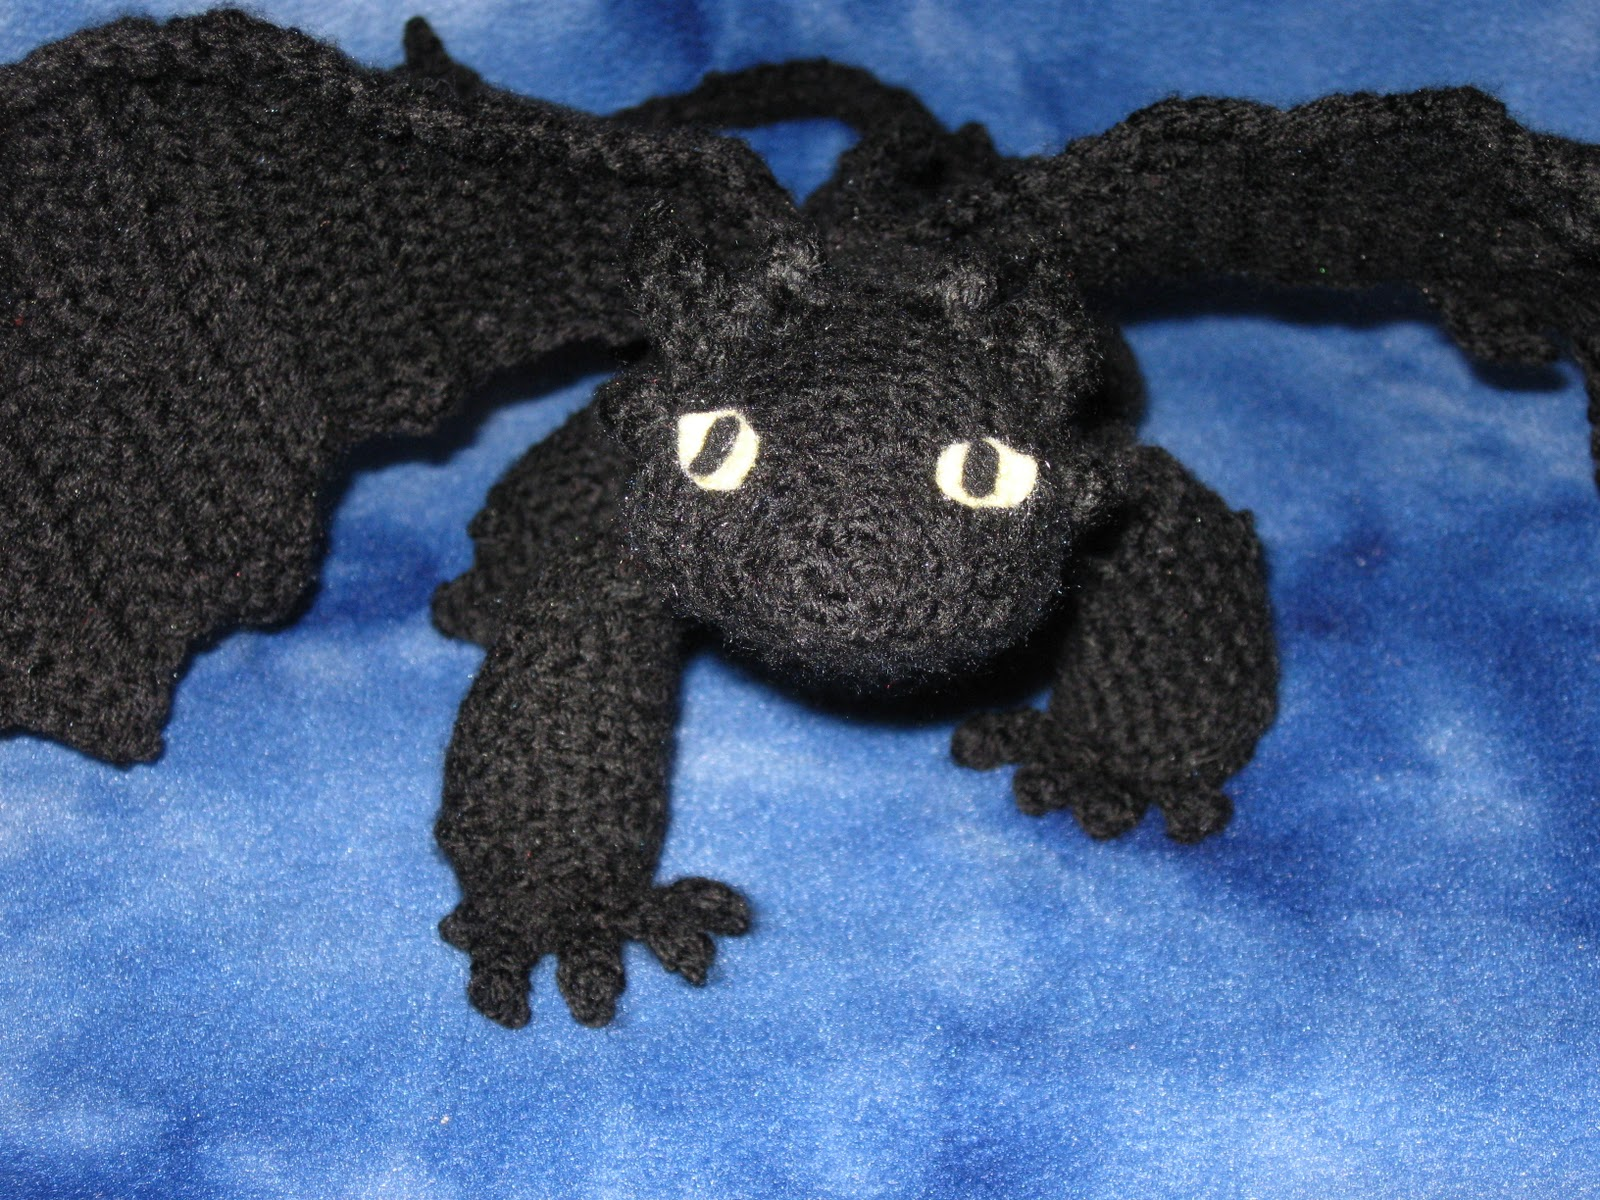 Free Crochet Pattern For Toothless The Dragon : Mostly Nerdy Crochet: Presenting Toothless